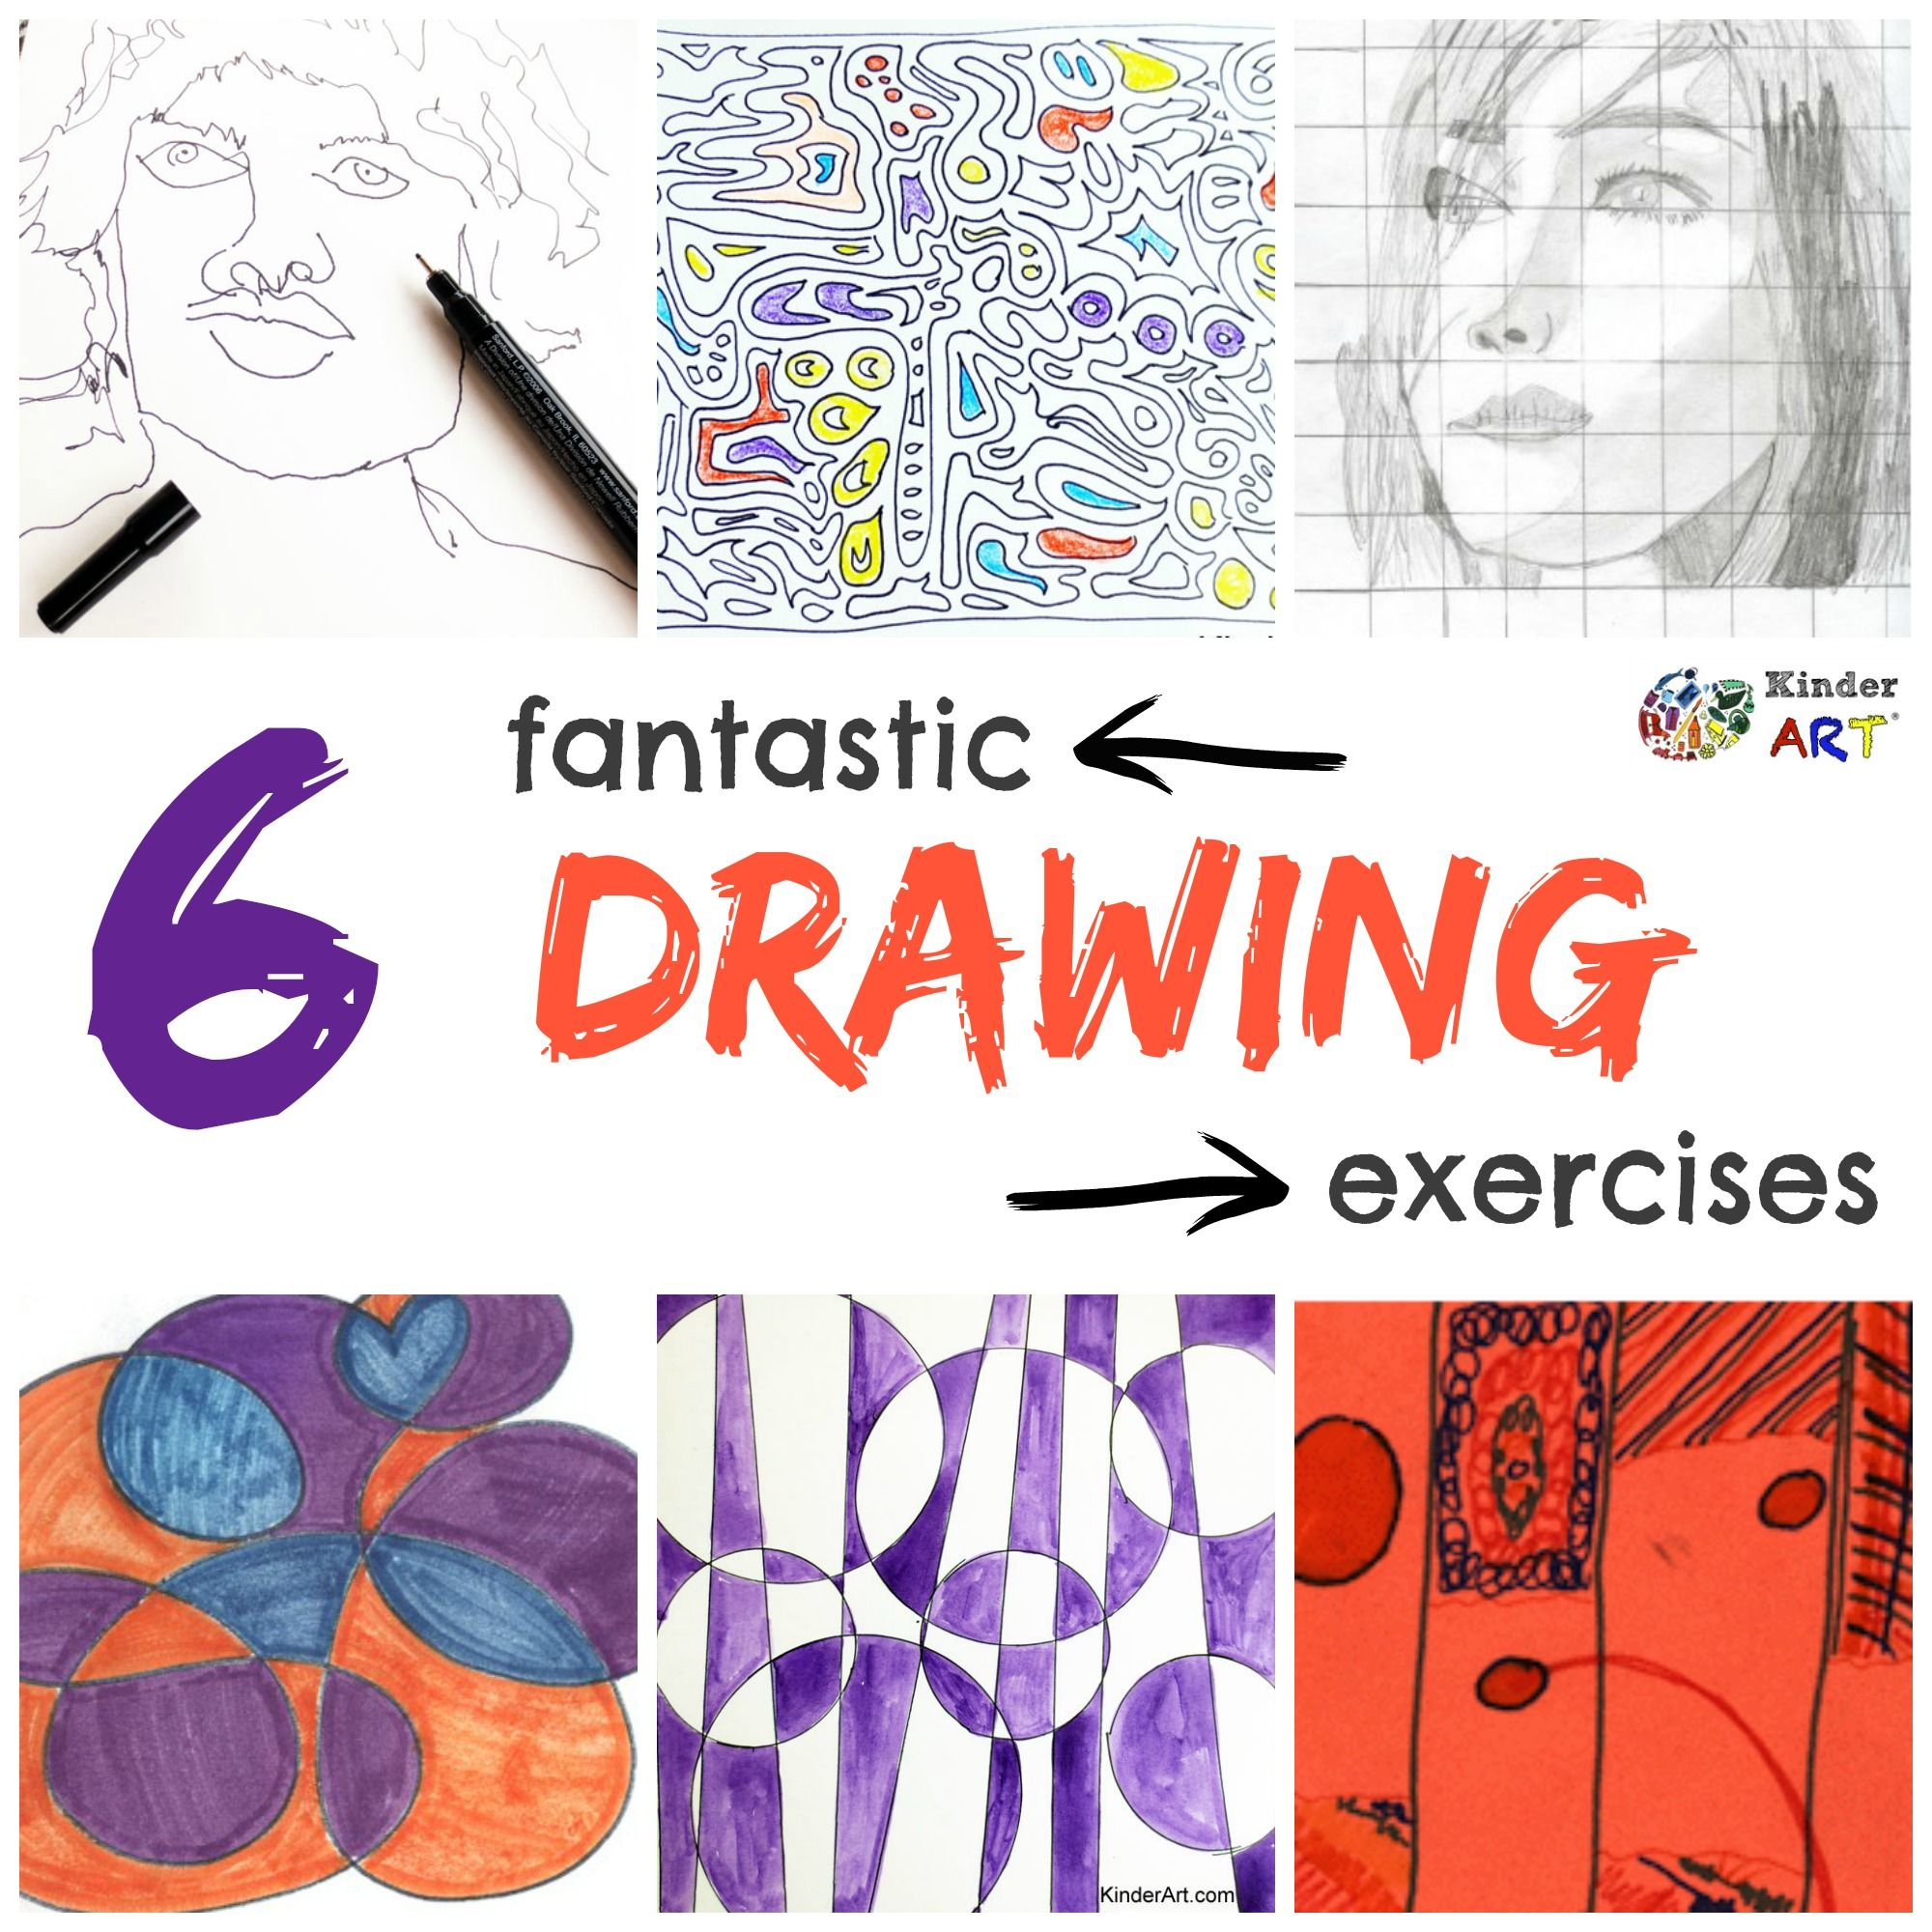 6 Fantastic Drawing Exercises Kinderart